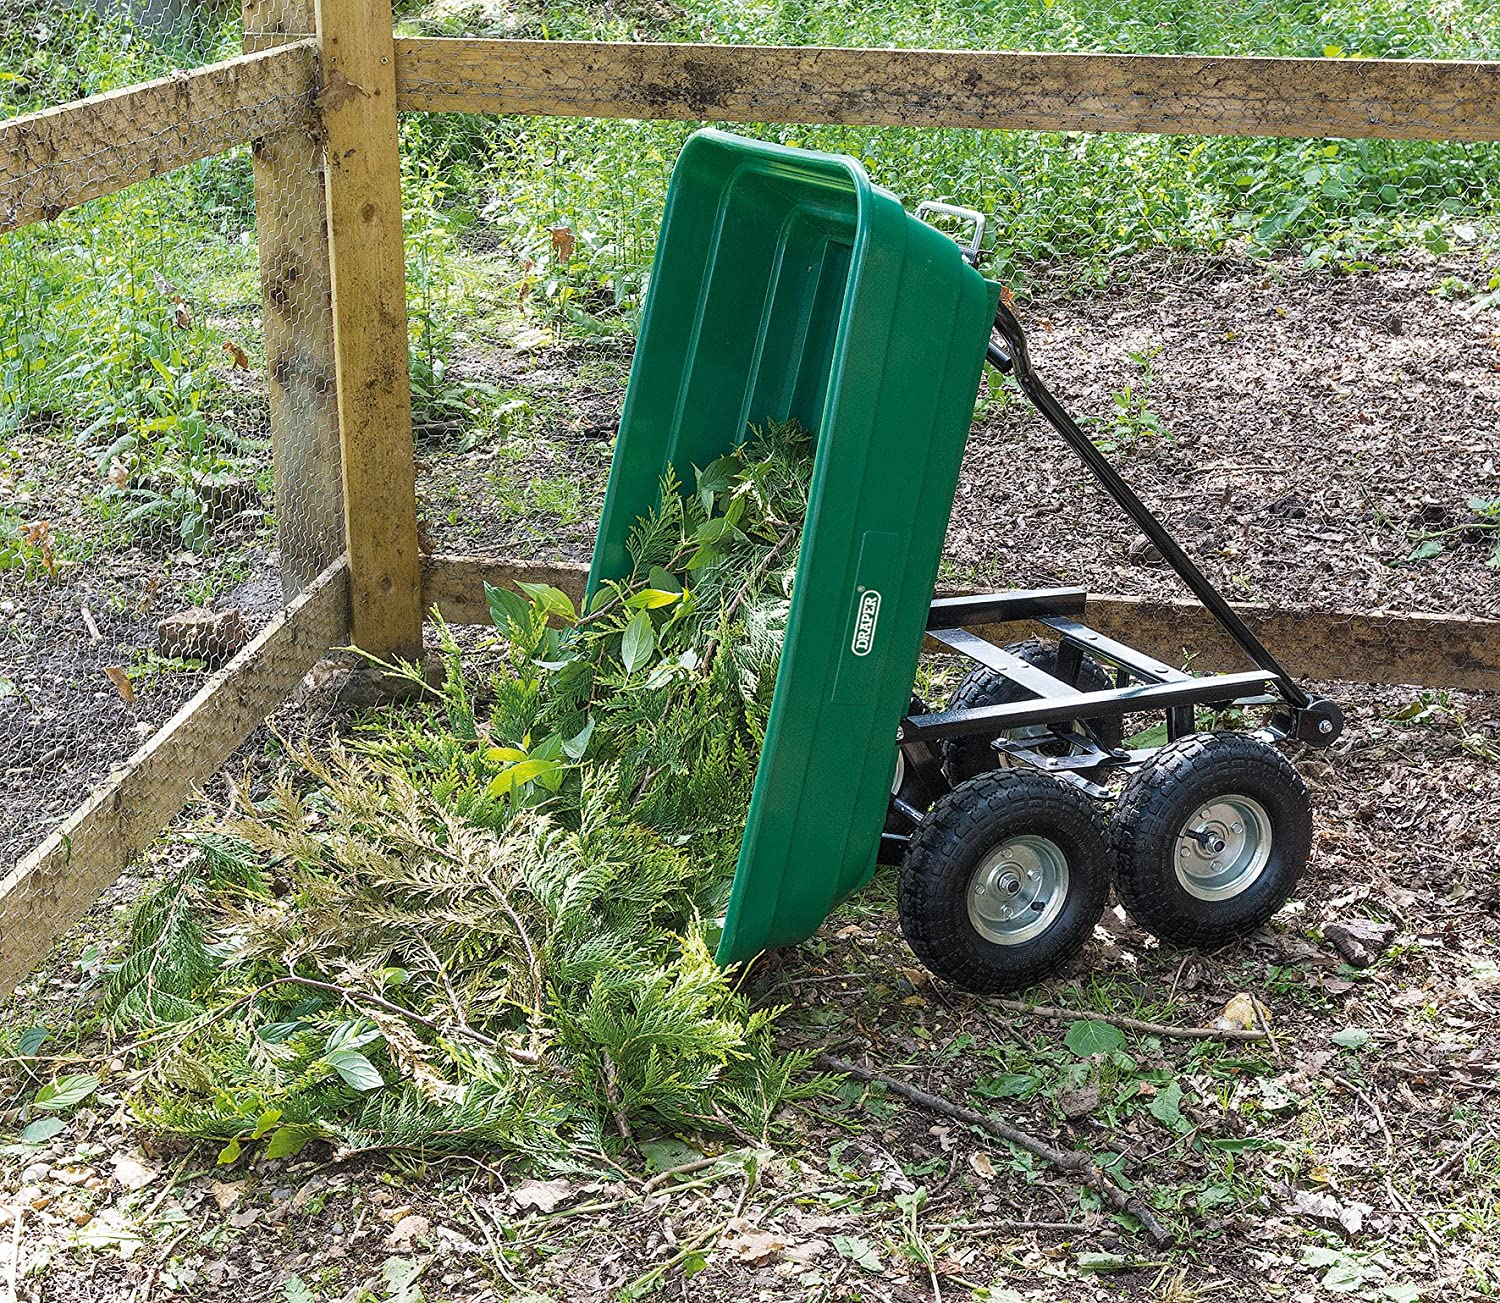 Before buying a garden cart trolley, consider these factors.